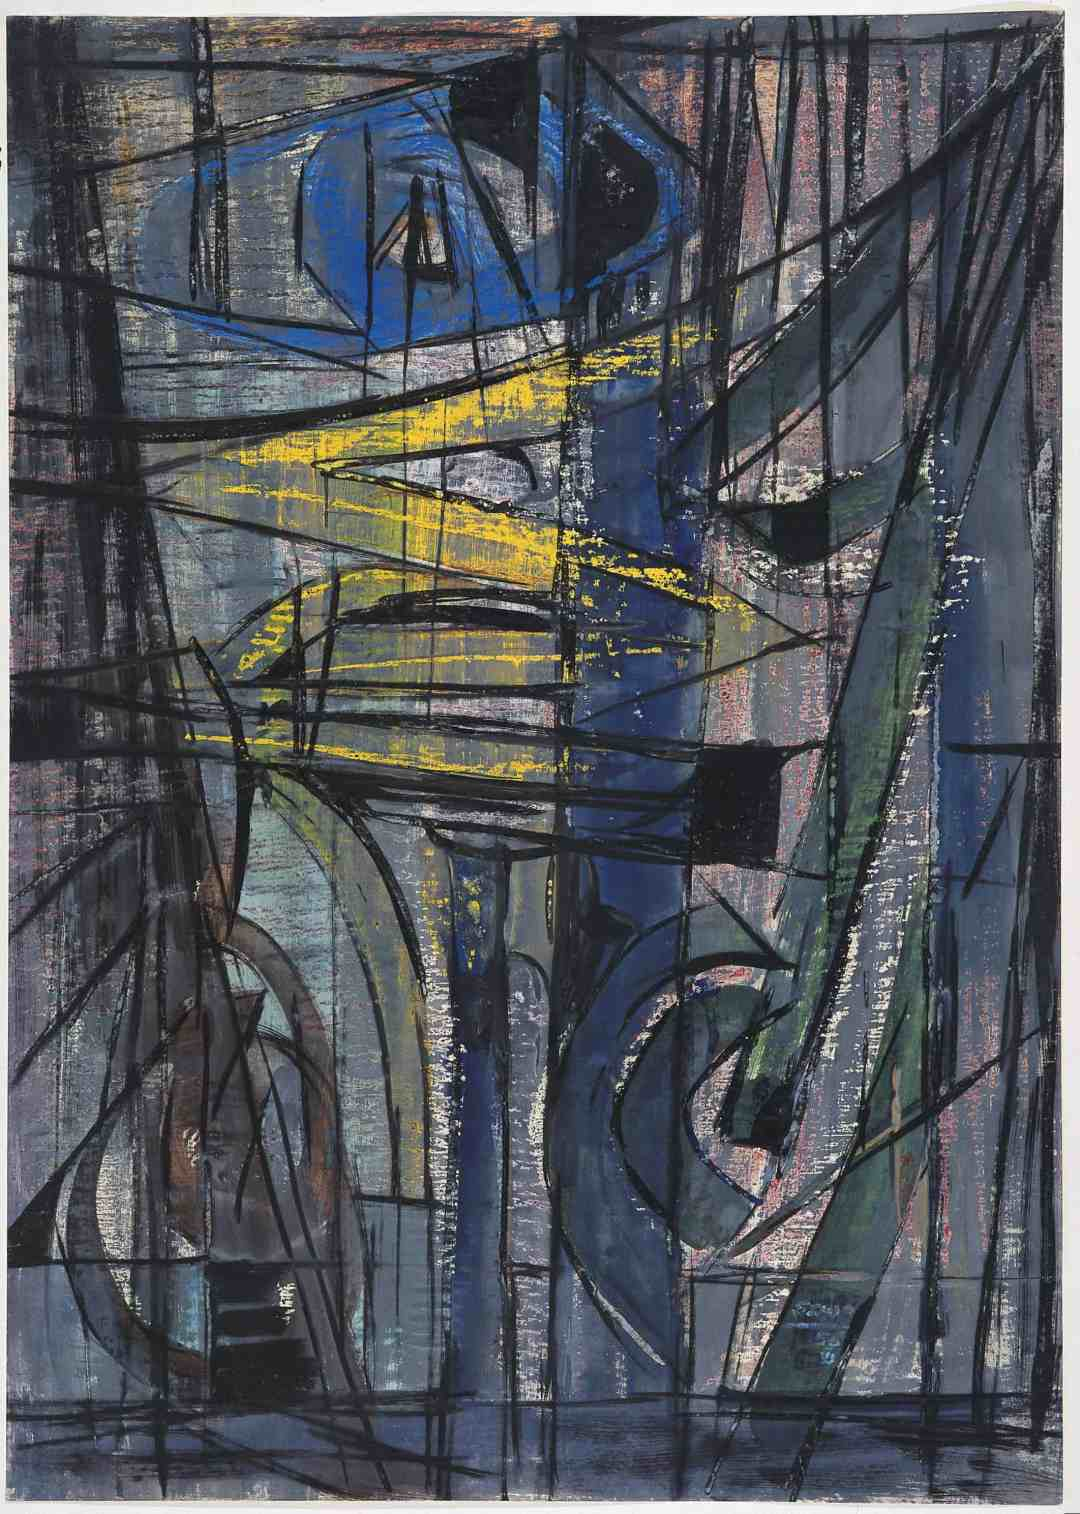 Bogusław Szwacz, Composition, 1956, ink, watercolour, tempera, pastel, paper, photograph by Zygmunt Gajewski (4)